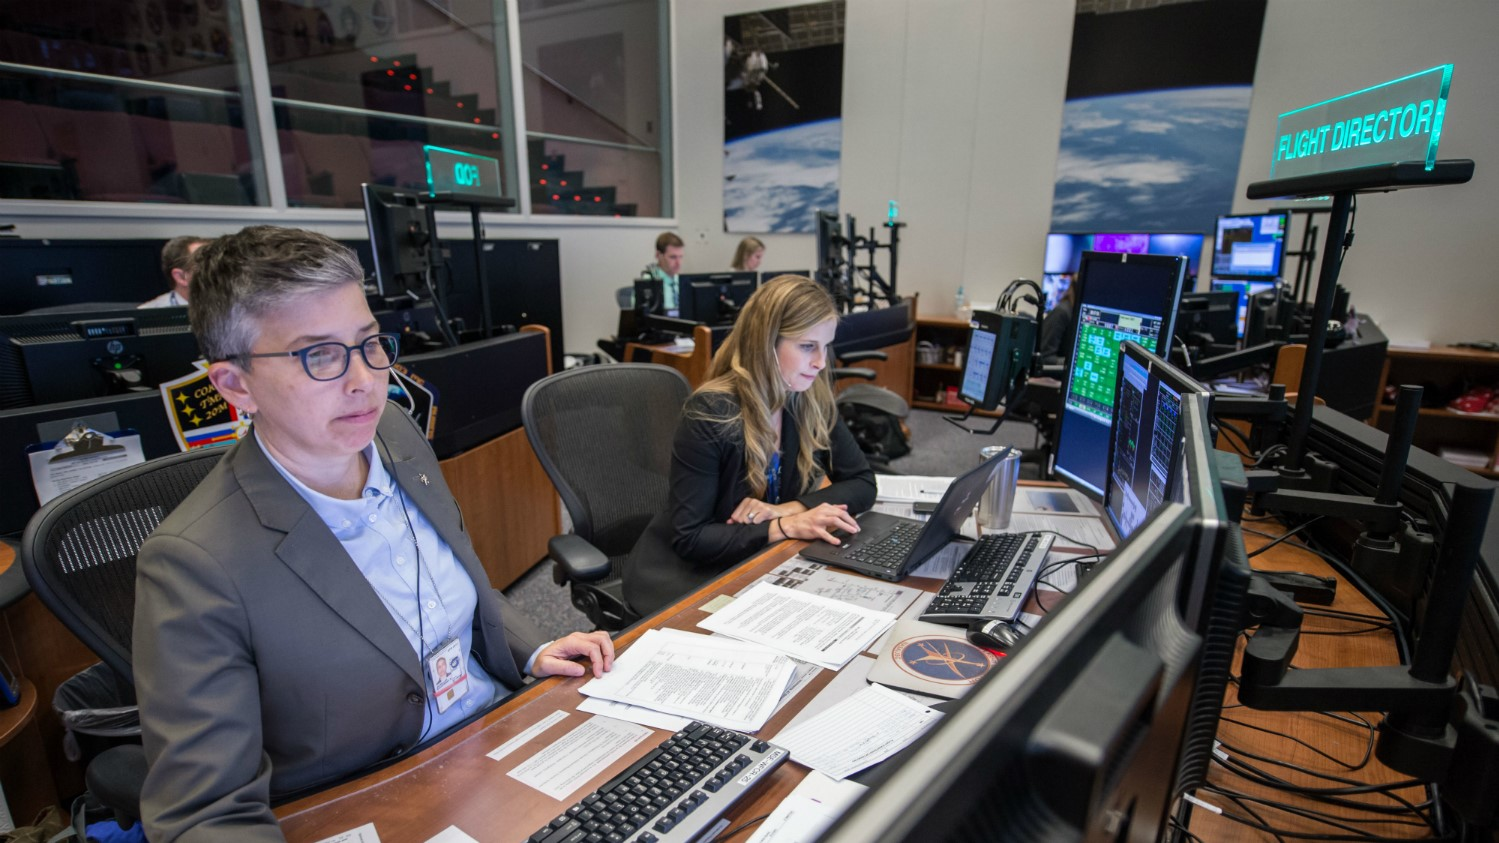 NASA is hiring flight directors for its human spaceflight operations at the agency's Mission Control Center in Houston. Photo Credit: NASA